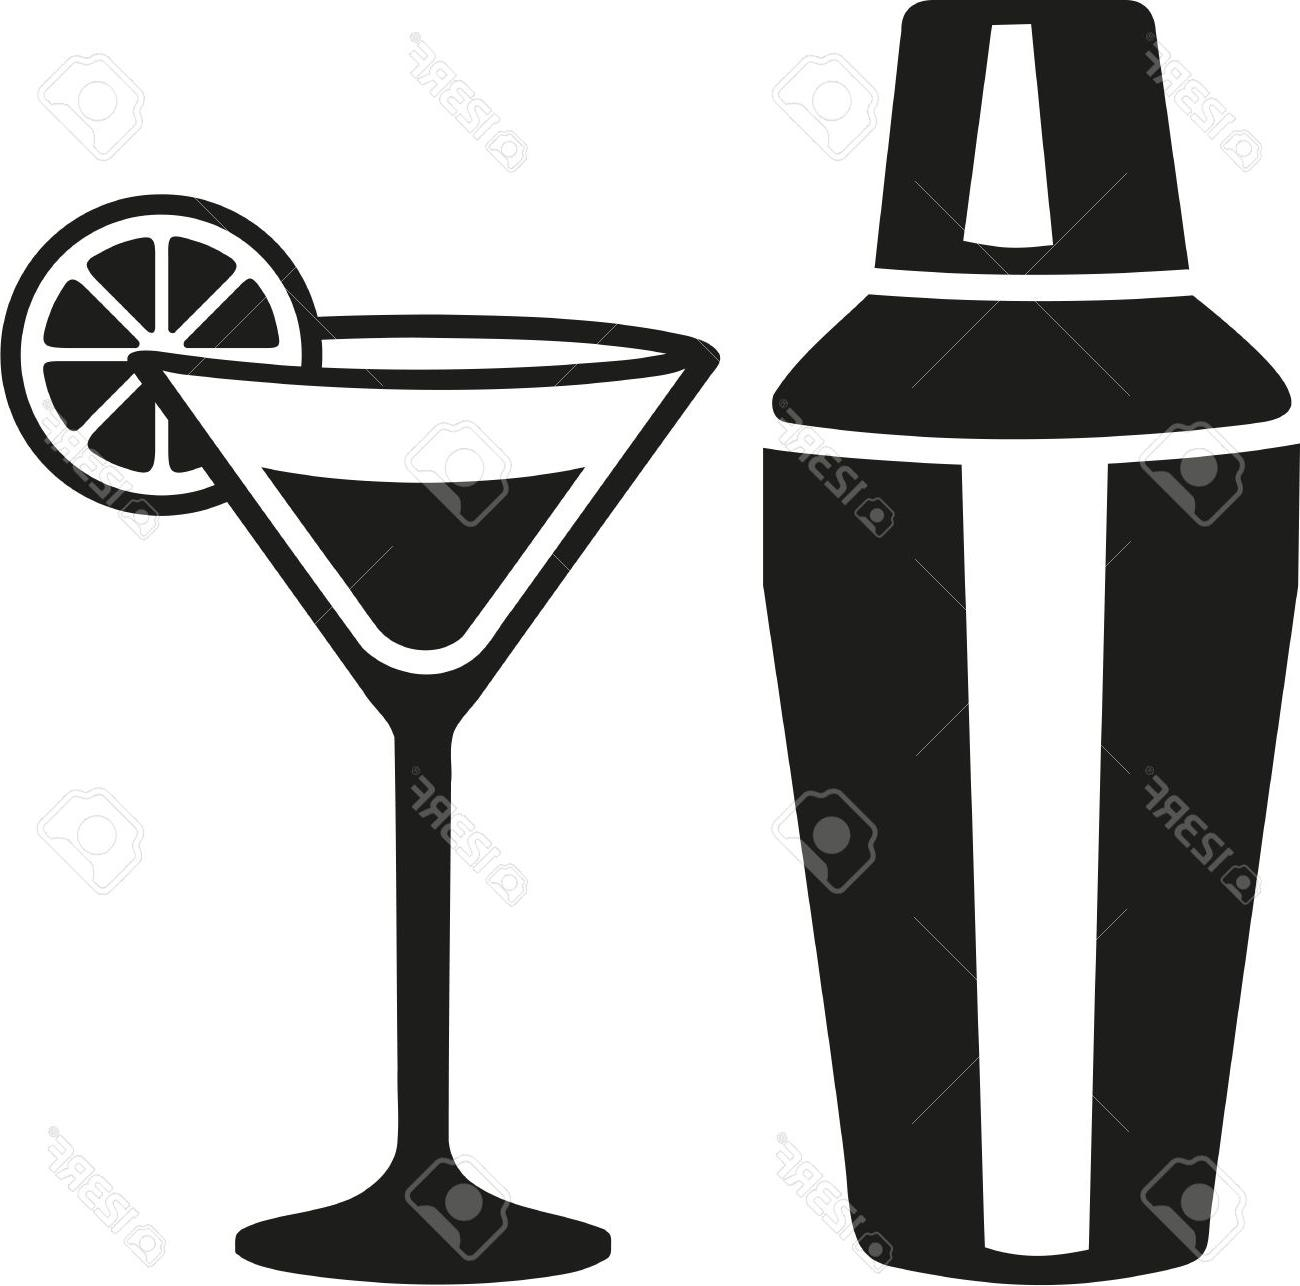 Cocktail Clipart Cocktail Mojito Fizzy Drinks - Martini Glass Svg - Free  Transparent PNG Clipart Images Download